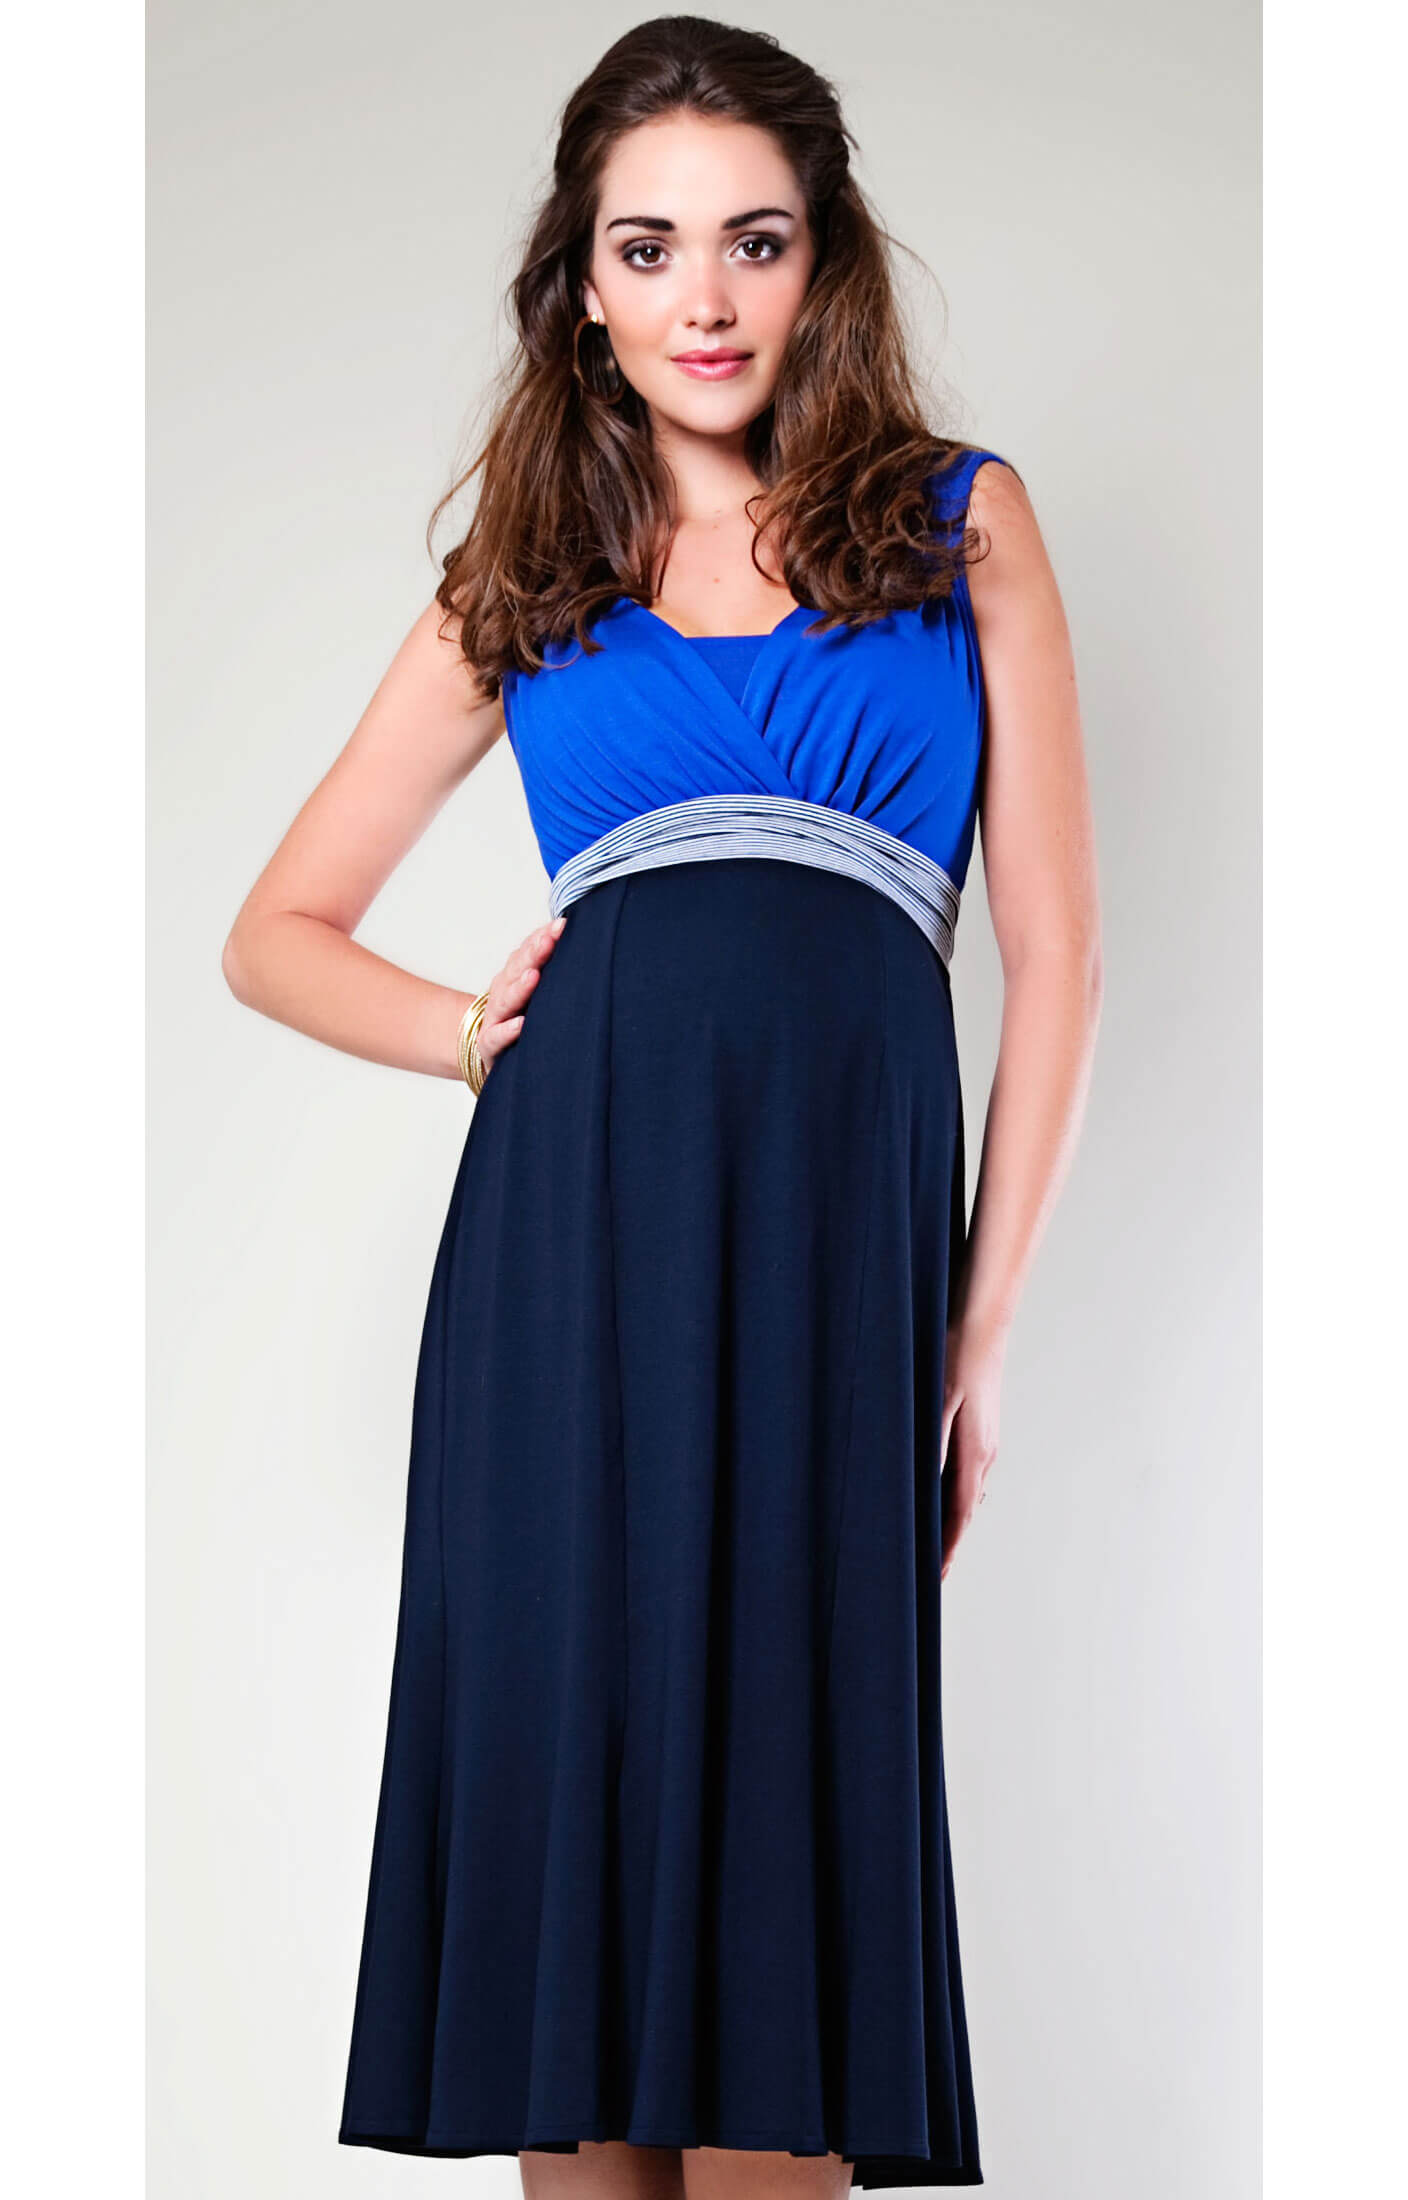 Swing cruise jersey maternity dress maternity wedding for Wedding dresses for cruise ship